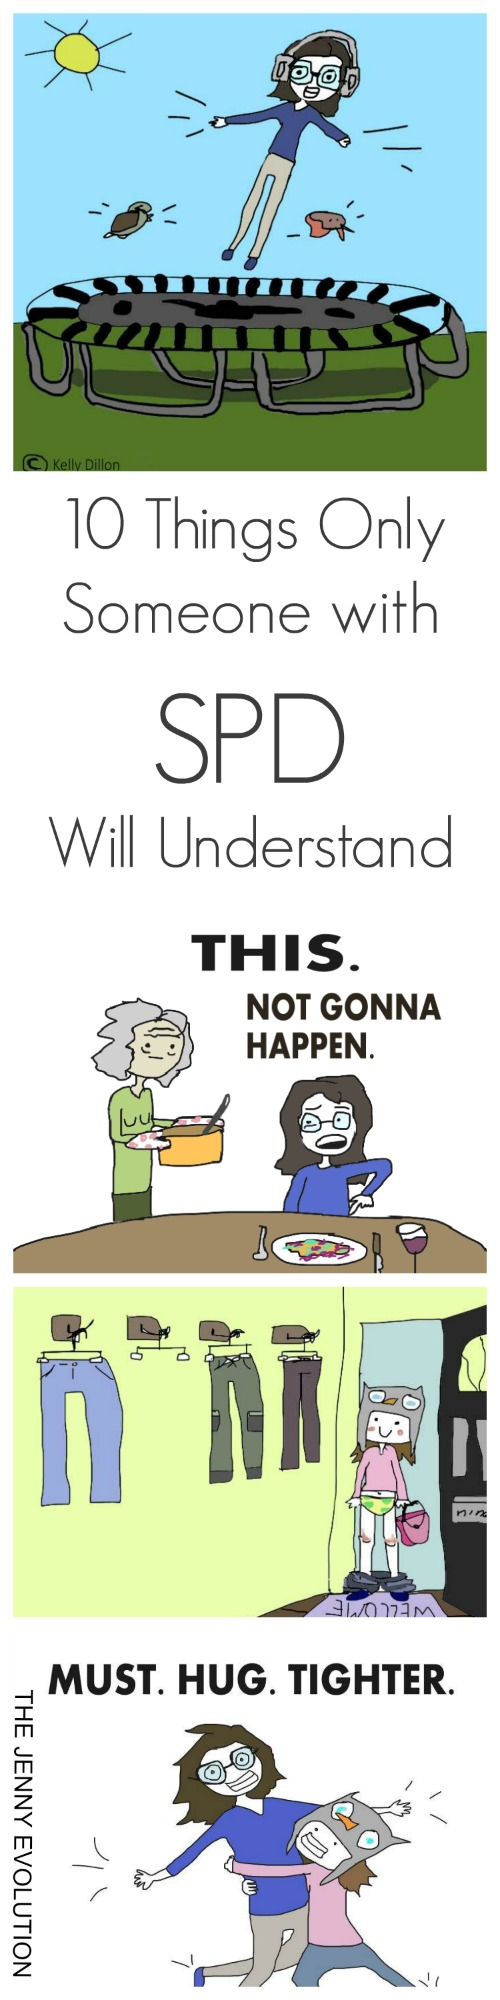 10 Things Only Someone with SPD Will Understand